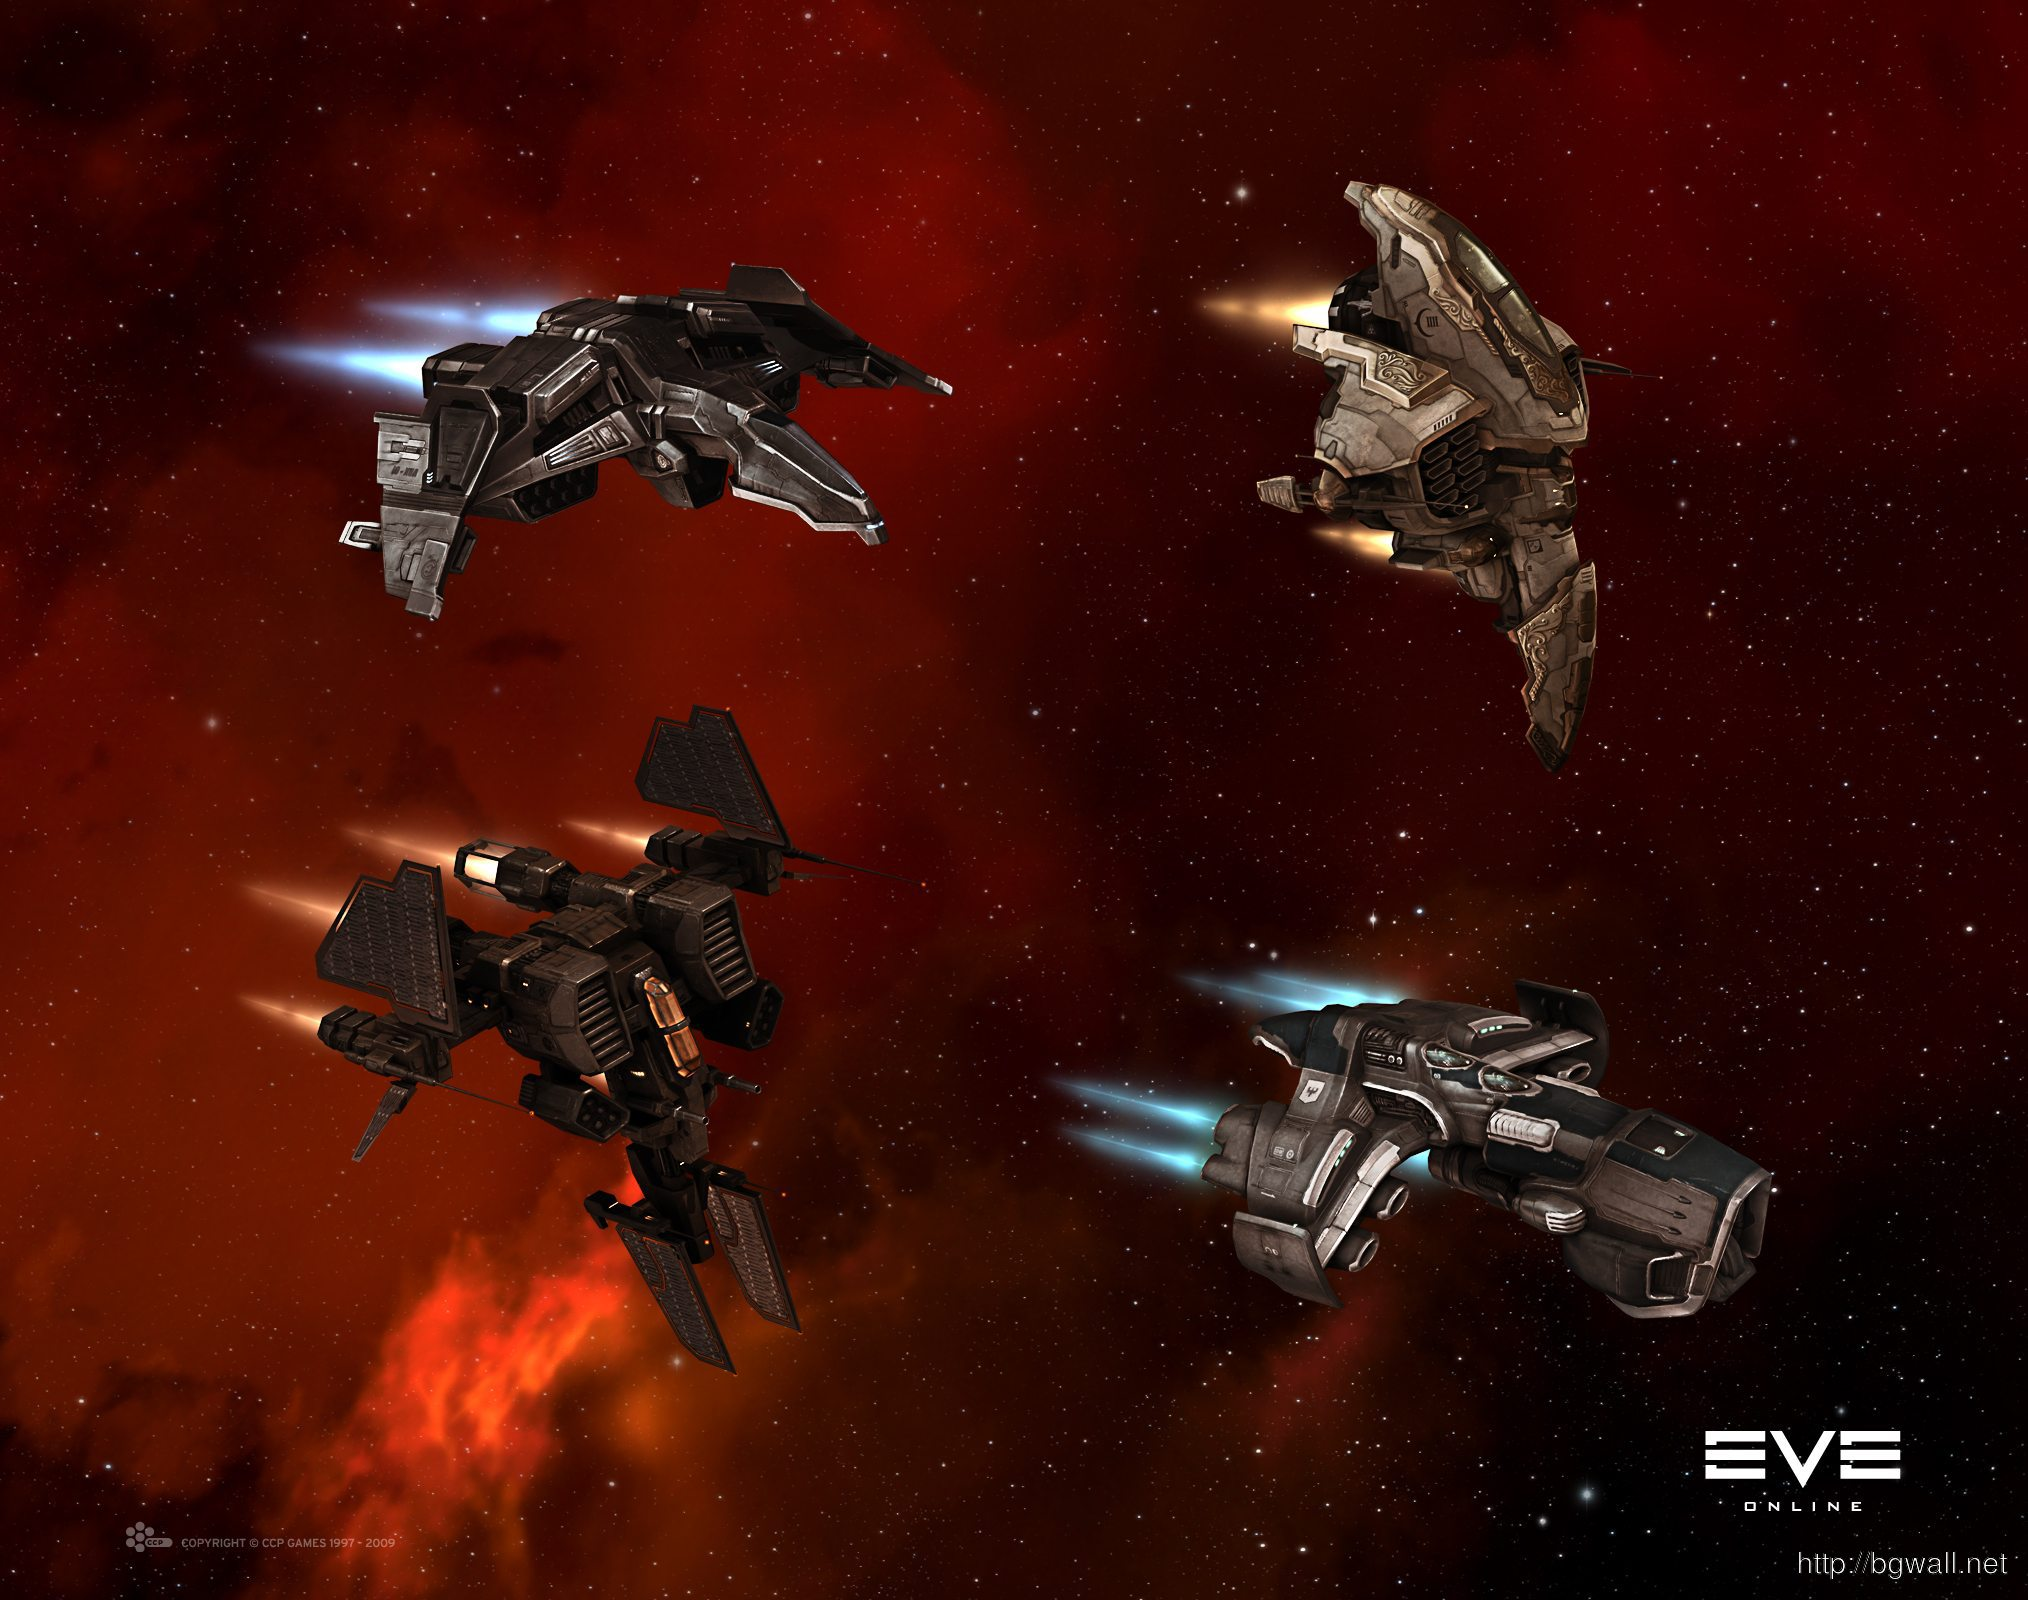 Eve Online Ships Wallpaper Hd